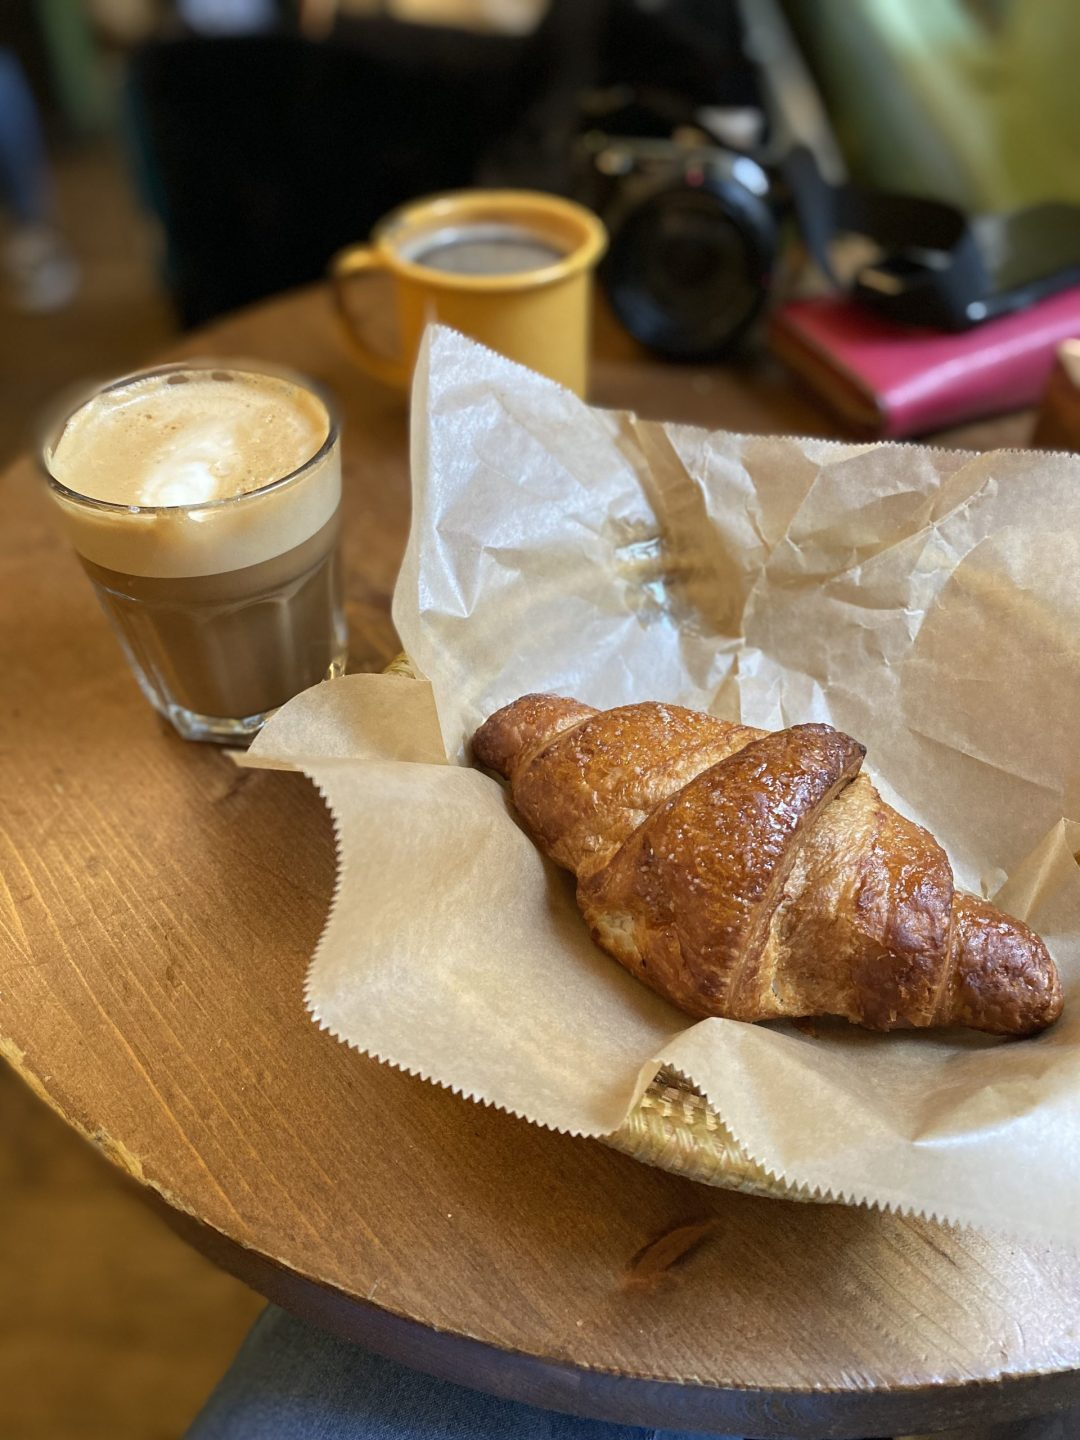 Vegan Amsterdam: Vegan croissant and soya flat white at Bake My Day